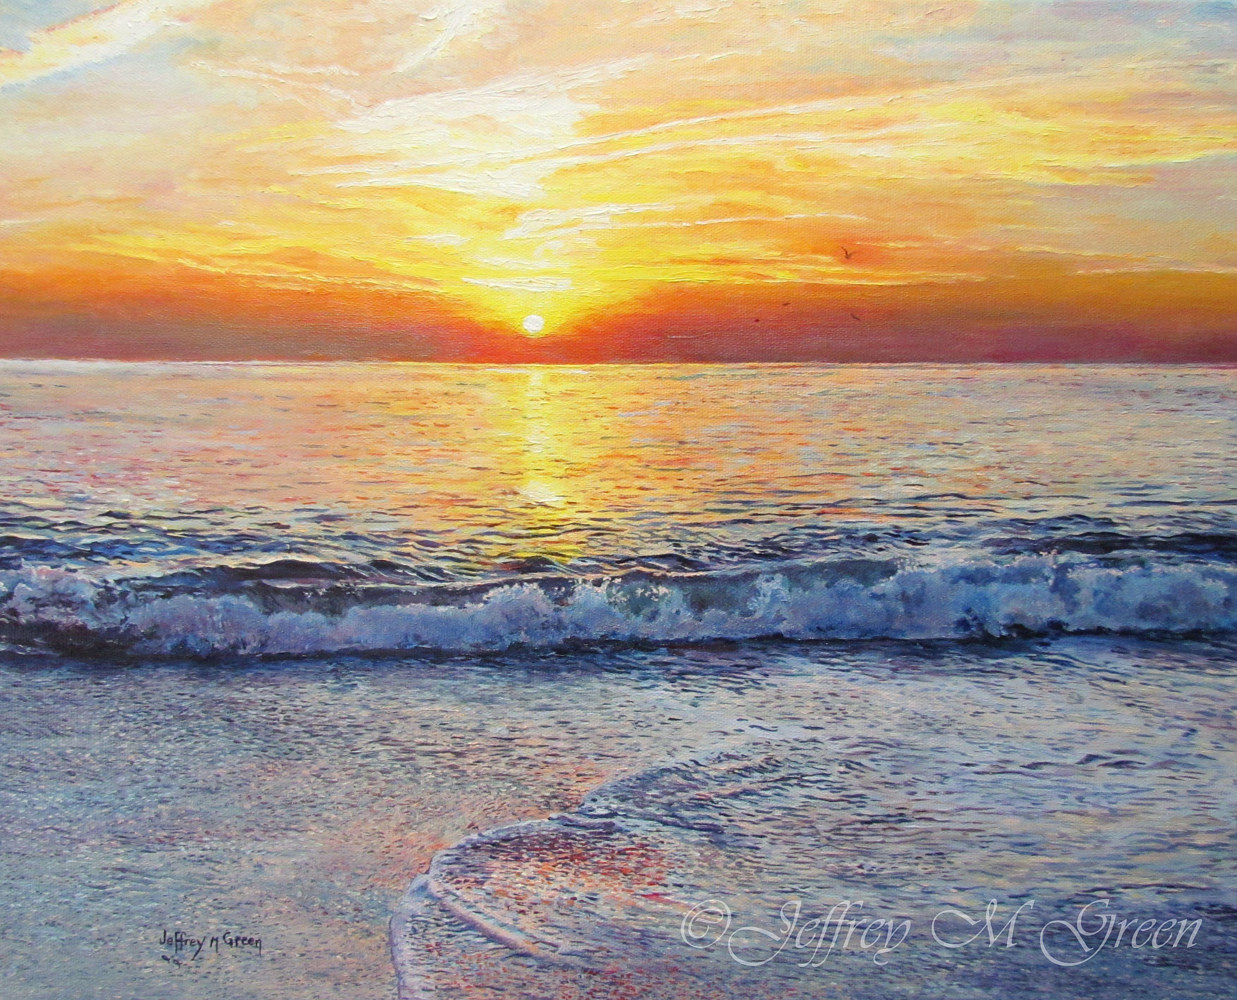 """Atlantic Morning"", 16"" x 20"", oils on canvass. by Jeffrey Green"